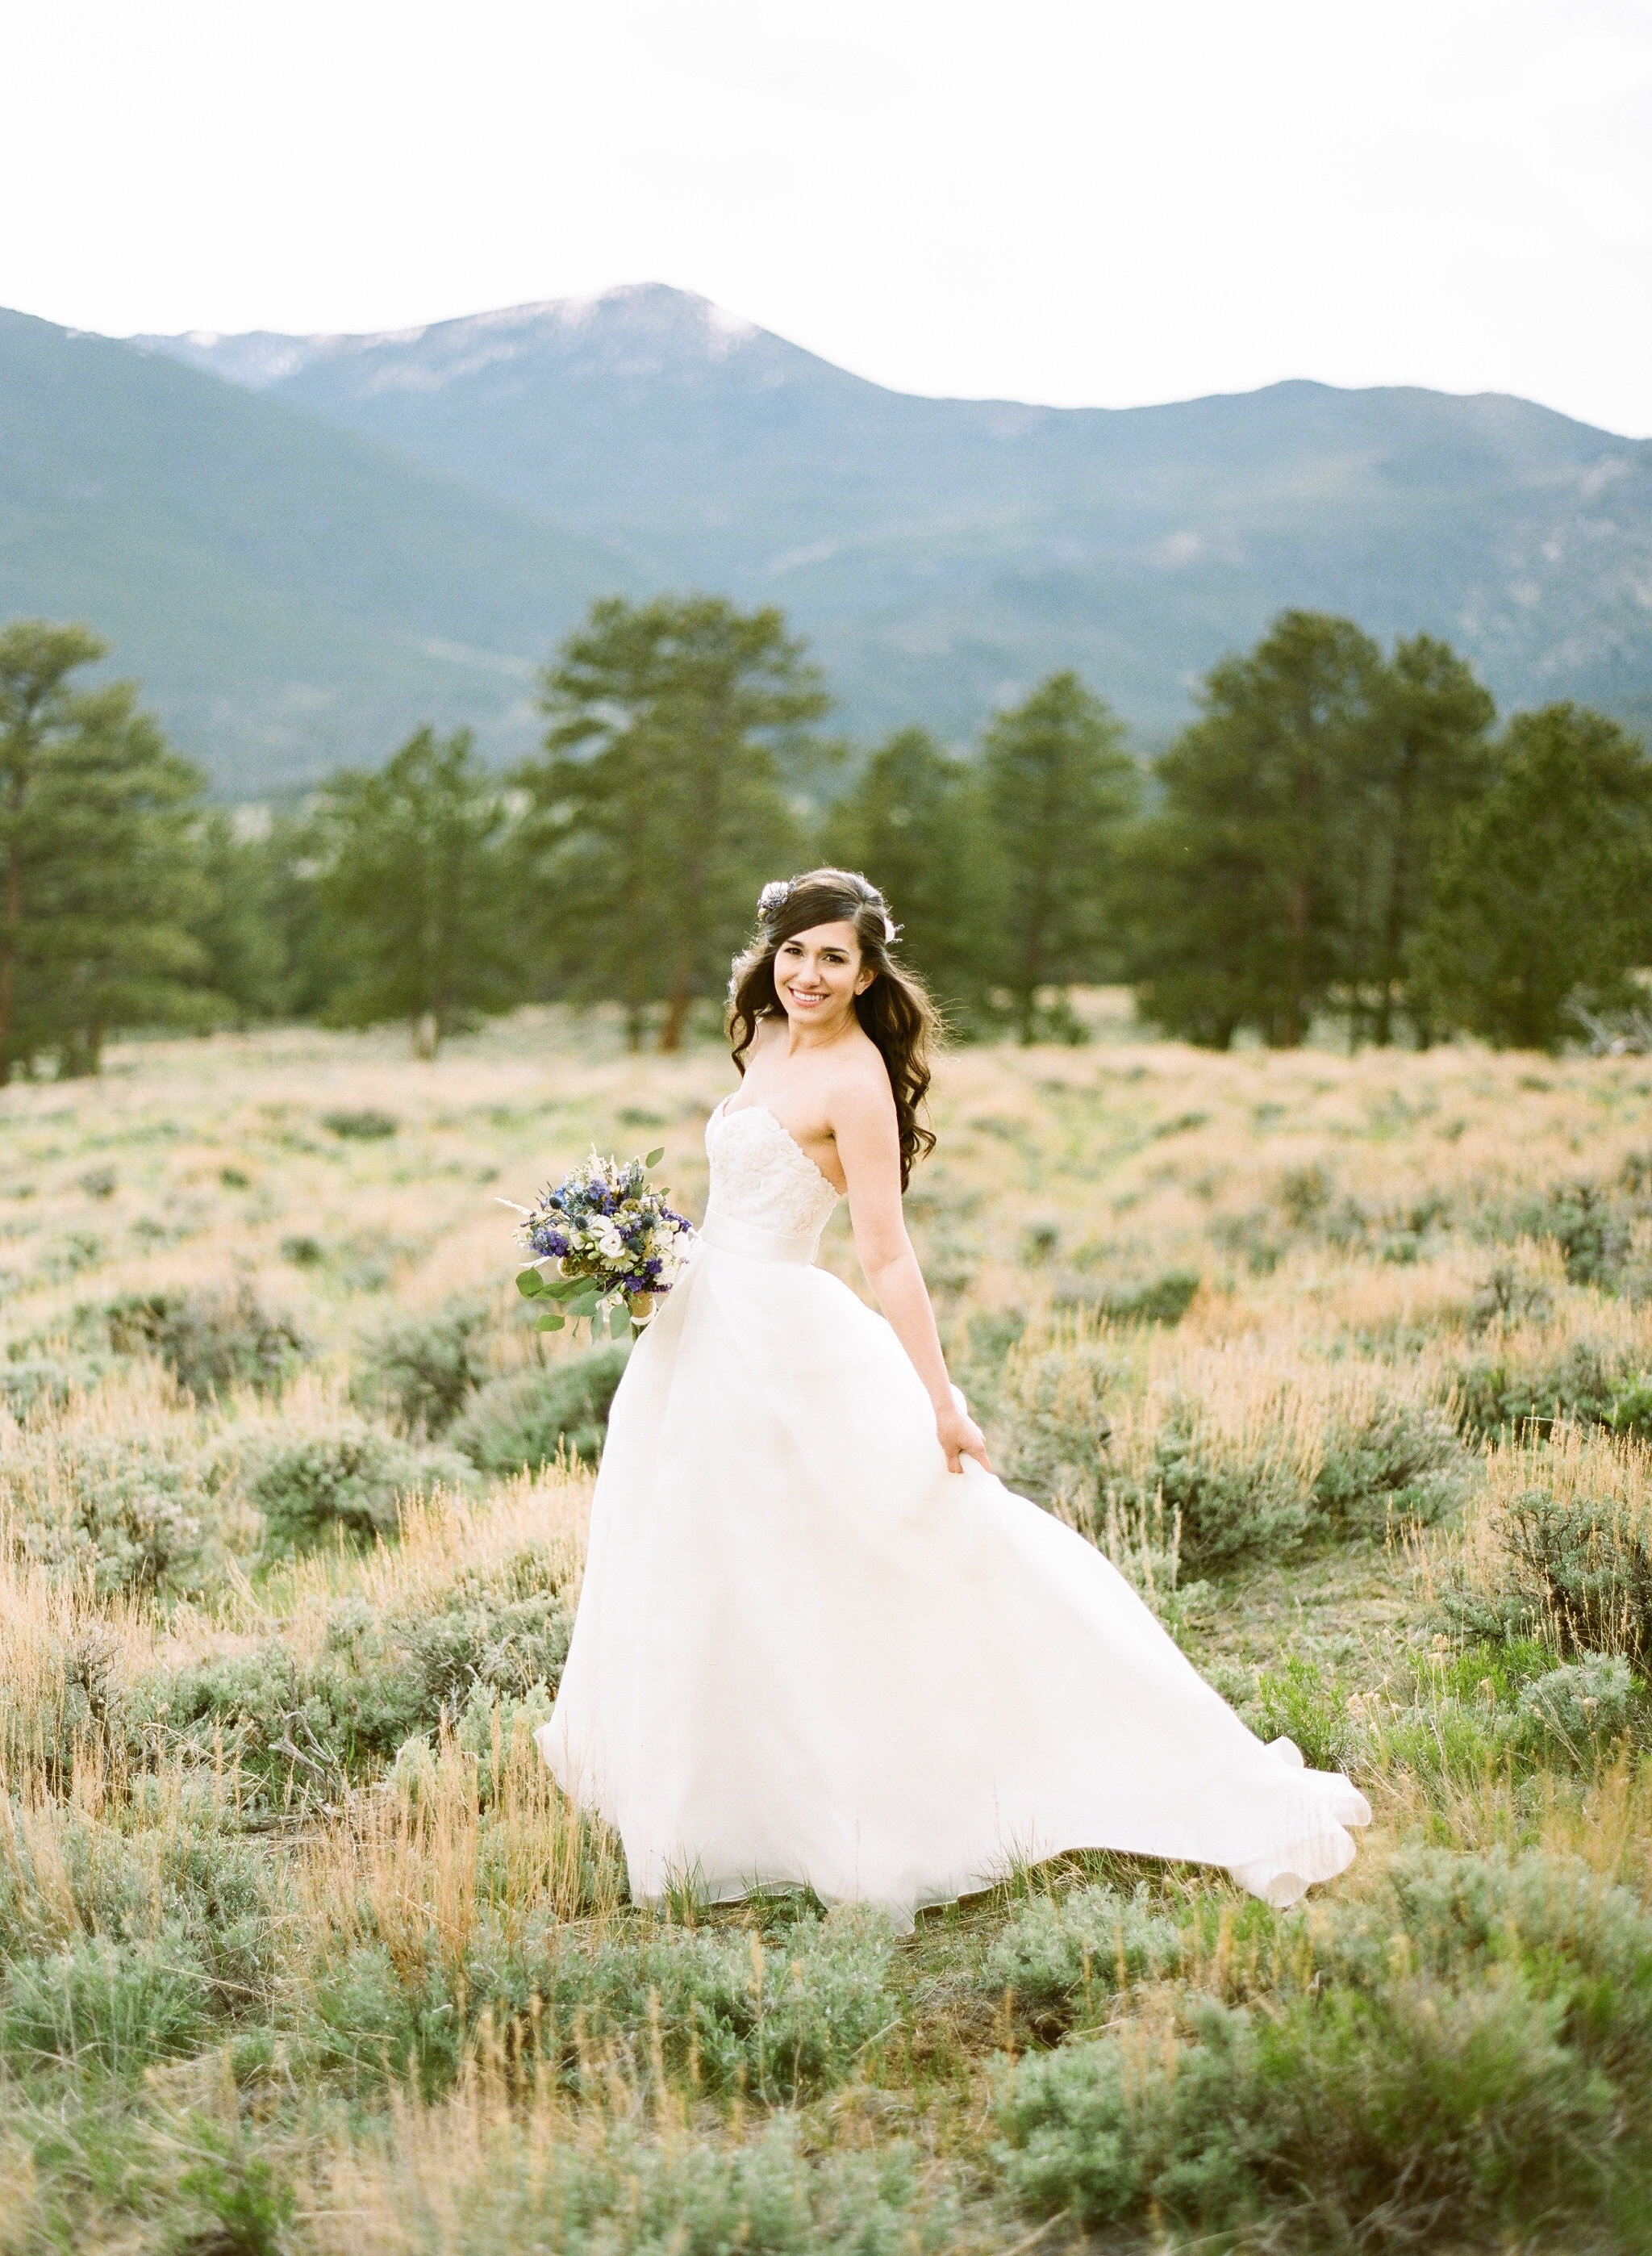 melisa-jackson-asheville-mountain-wedding-3.JPG